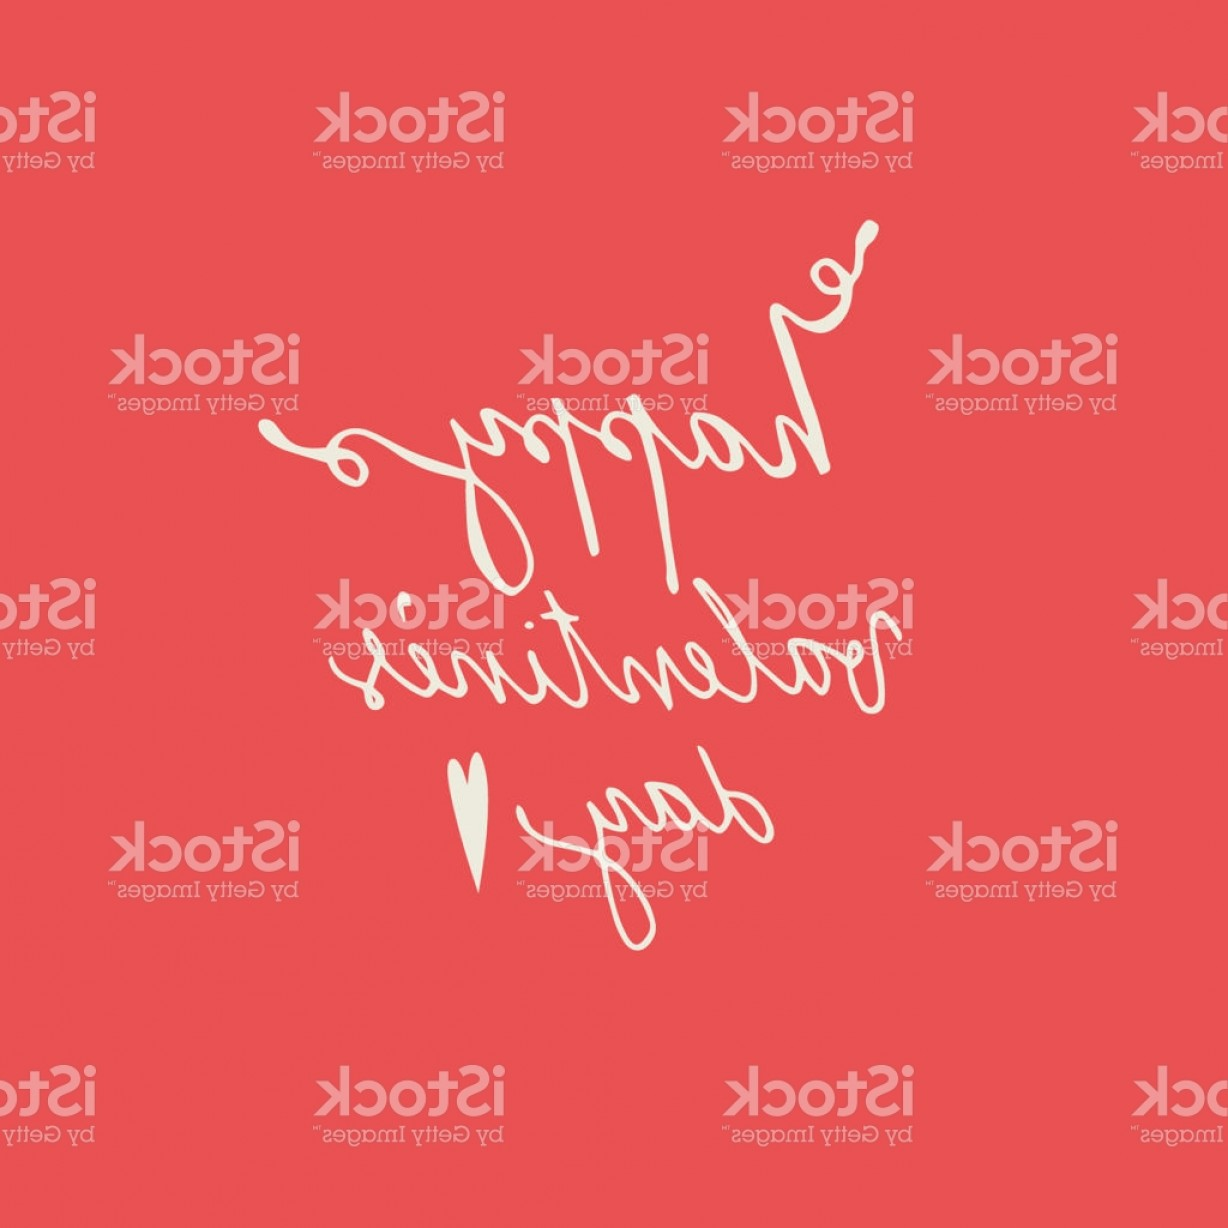 Small Arrow Vector: Vector Illustration Of Happy Valentines Day Words And Small Arrow Isolated On Red Gm